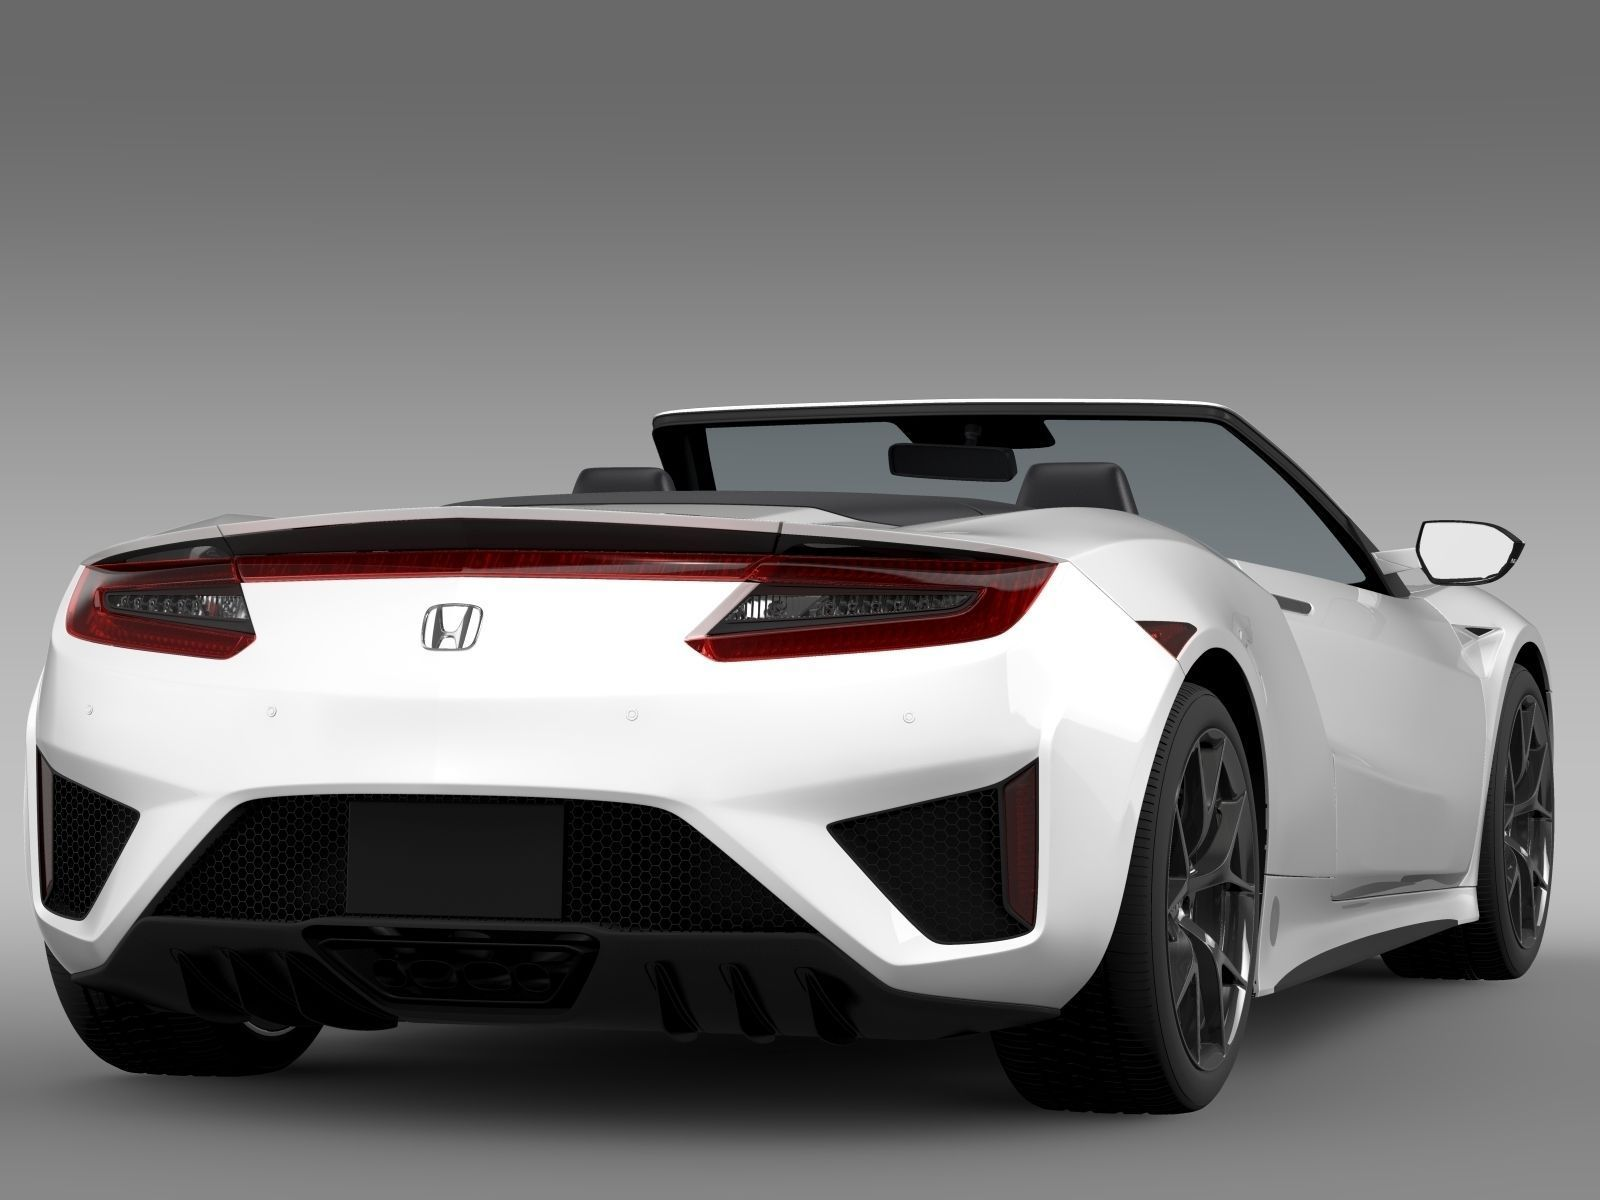 honda nsx cabriolet 2017 3d model max obj 3ds fbx c4d lwo lw lws. Black Bedroom Furniture Sets. Home Design Ideas